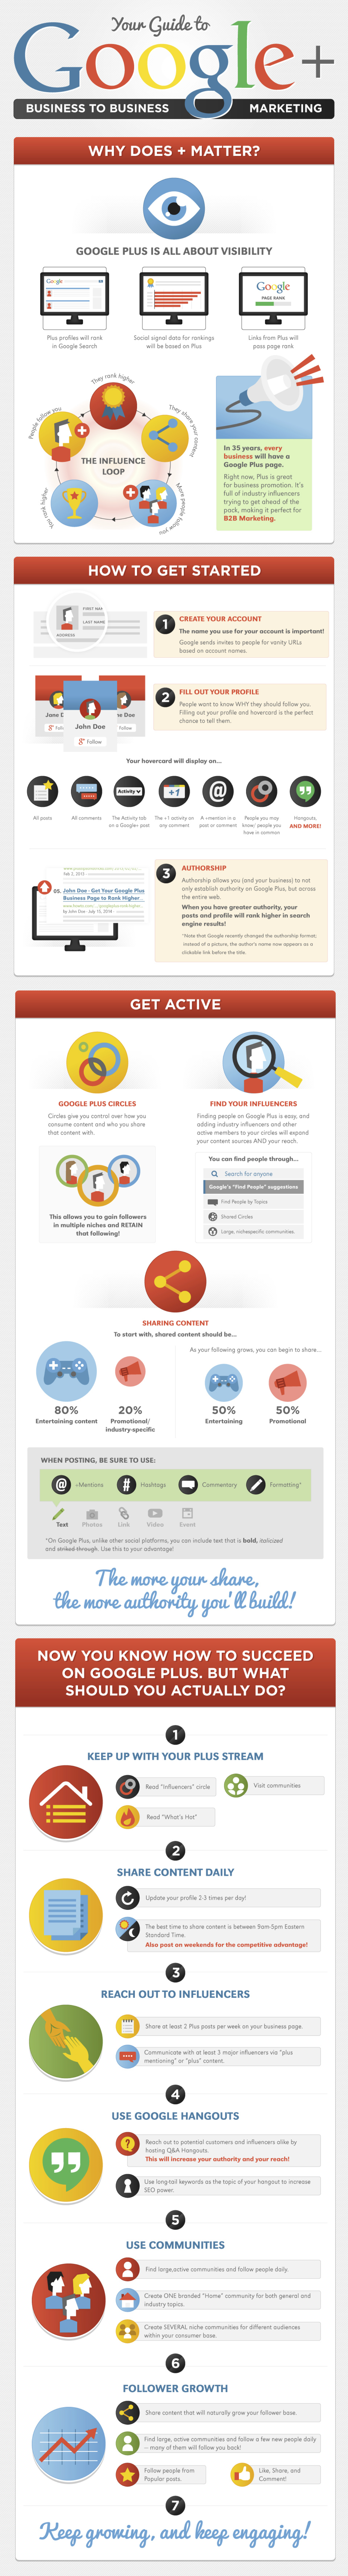 Guide_to_Google_Plus